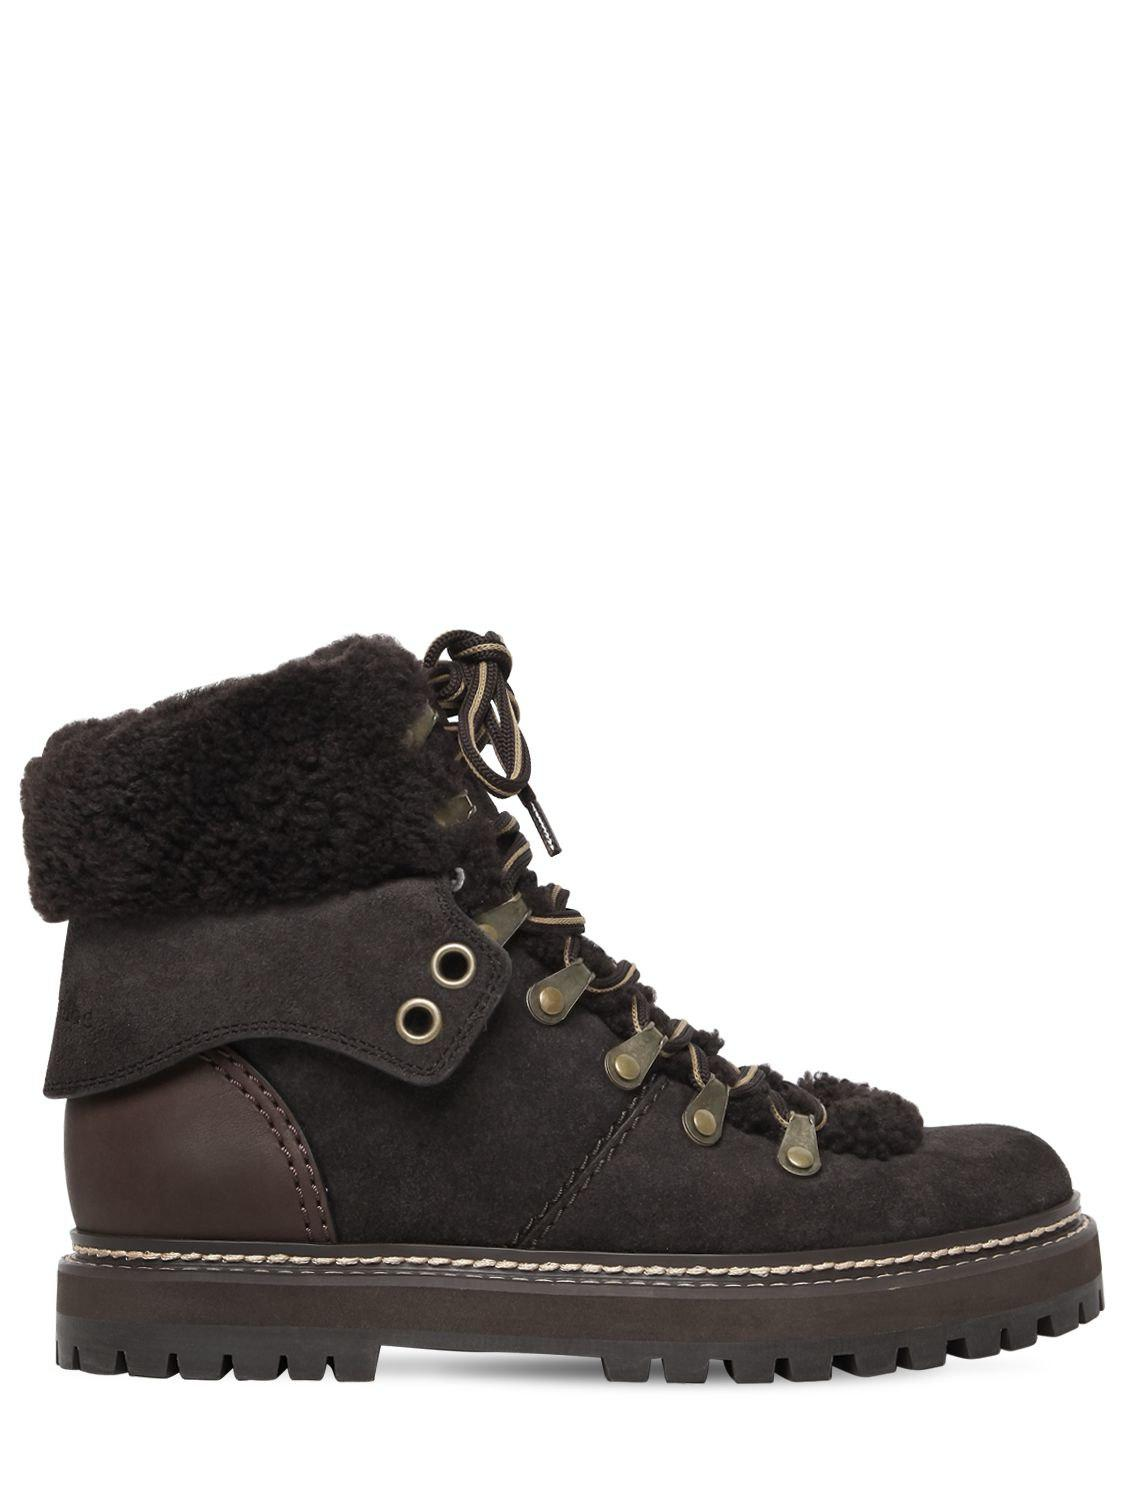 Pre Order Sale Online Free Shipping Websites Chloé 20MM SUEDE & SHEARLING HIKING BOOTS Qk2zUMZ